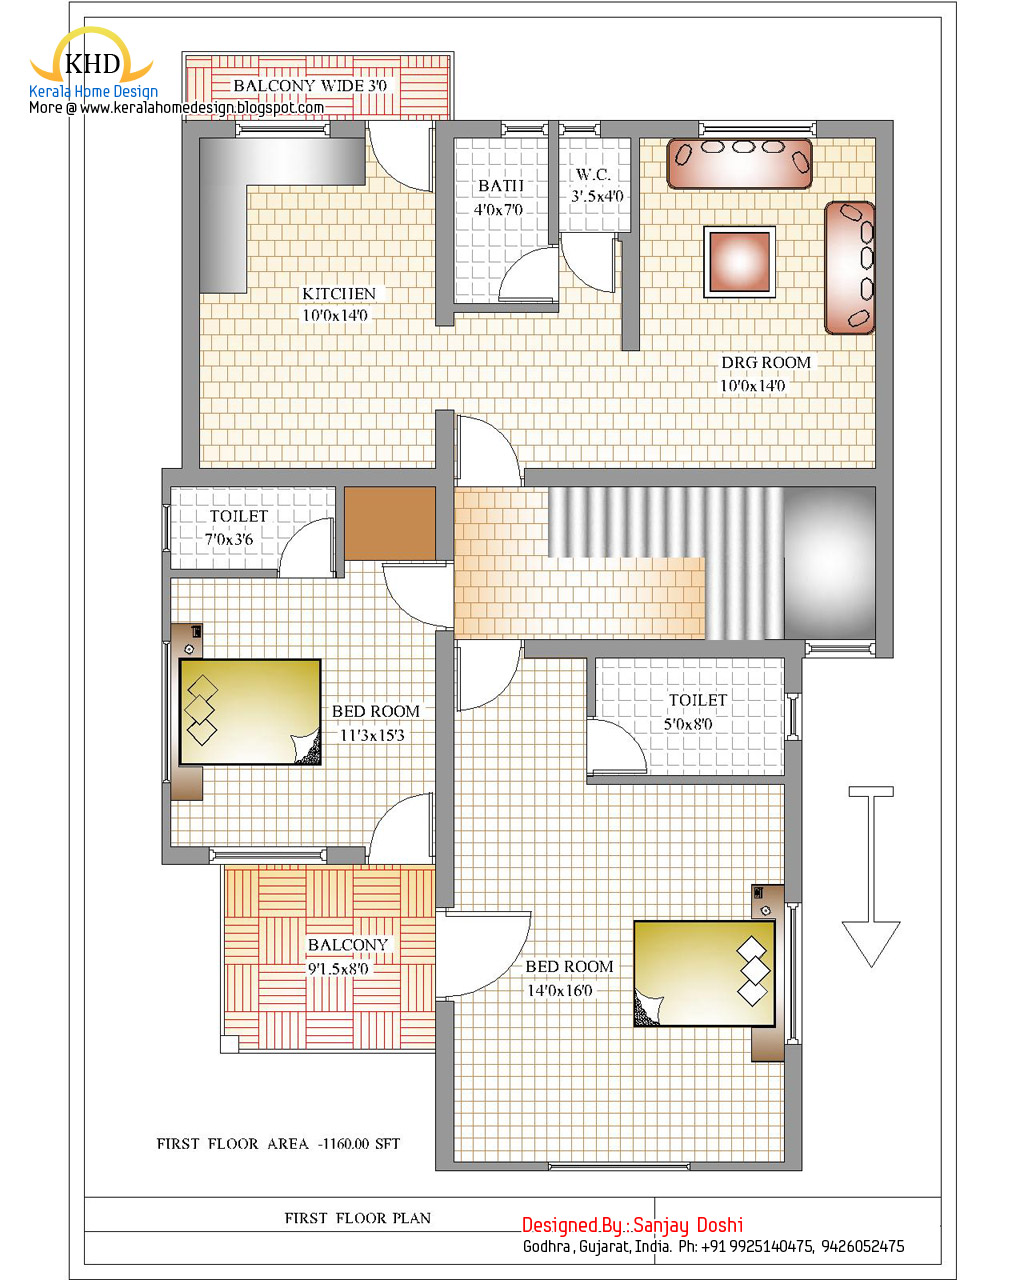 Duplex house plan and elevation 2310 sq ft home appliance Building floor plans